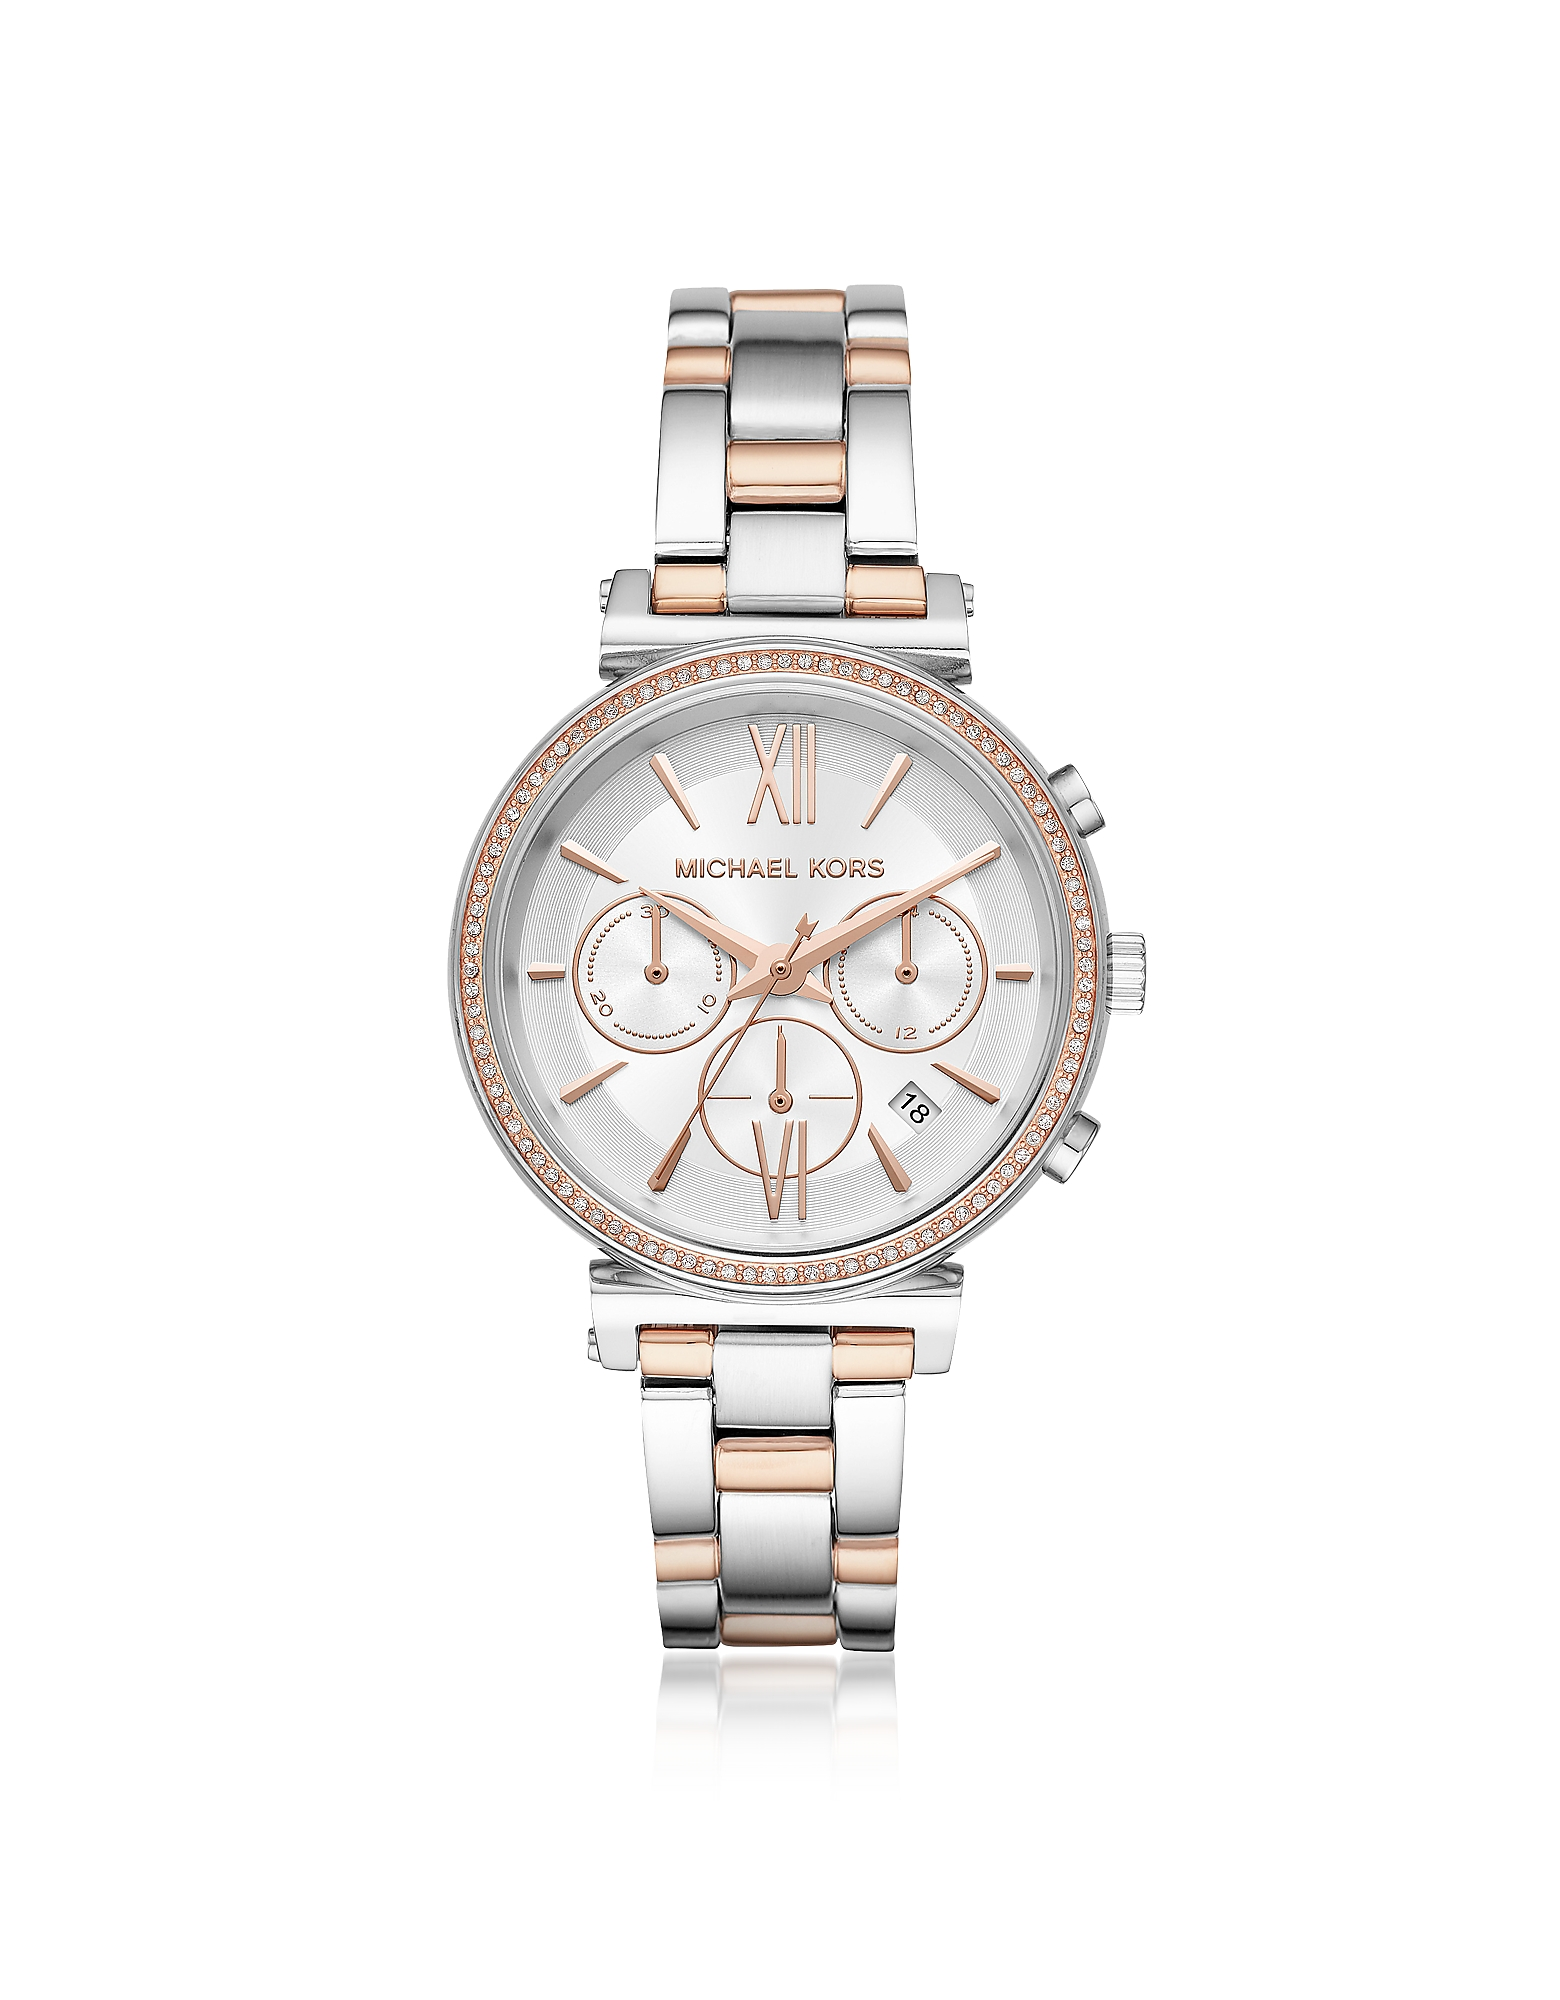 Michael Kors Women's Watches, Sofie Pavé Two-Tone Women's Watch